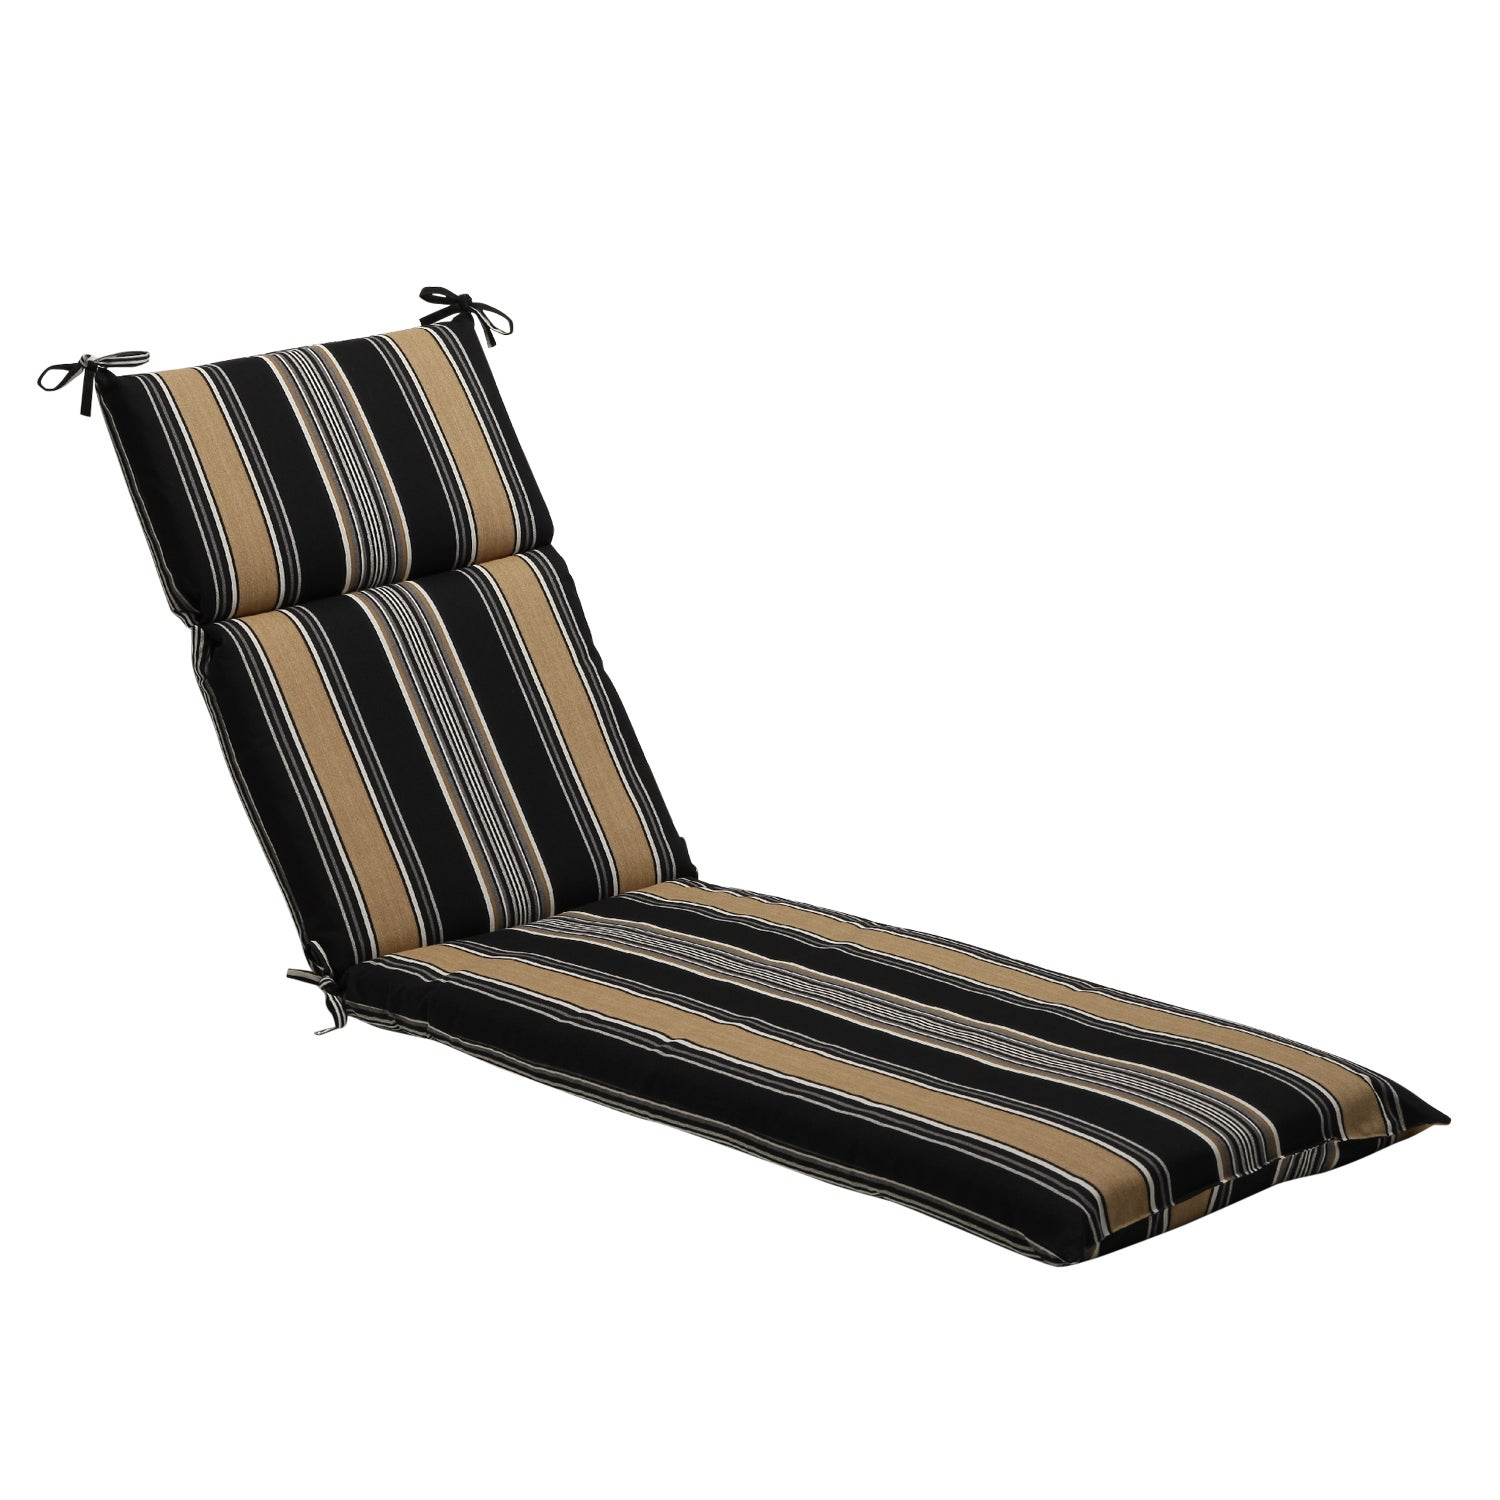 Black tan stripe outdoor chaise lounge cushion free for Black and white striped chaise lounge cushions